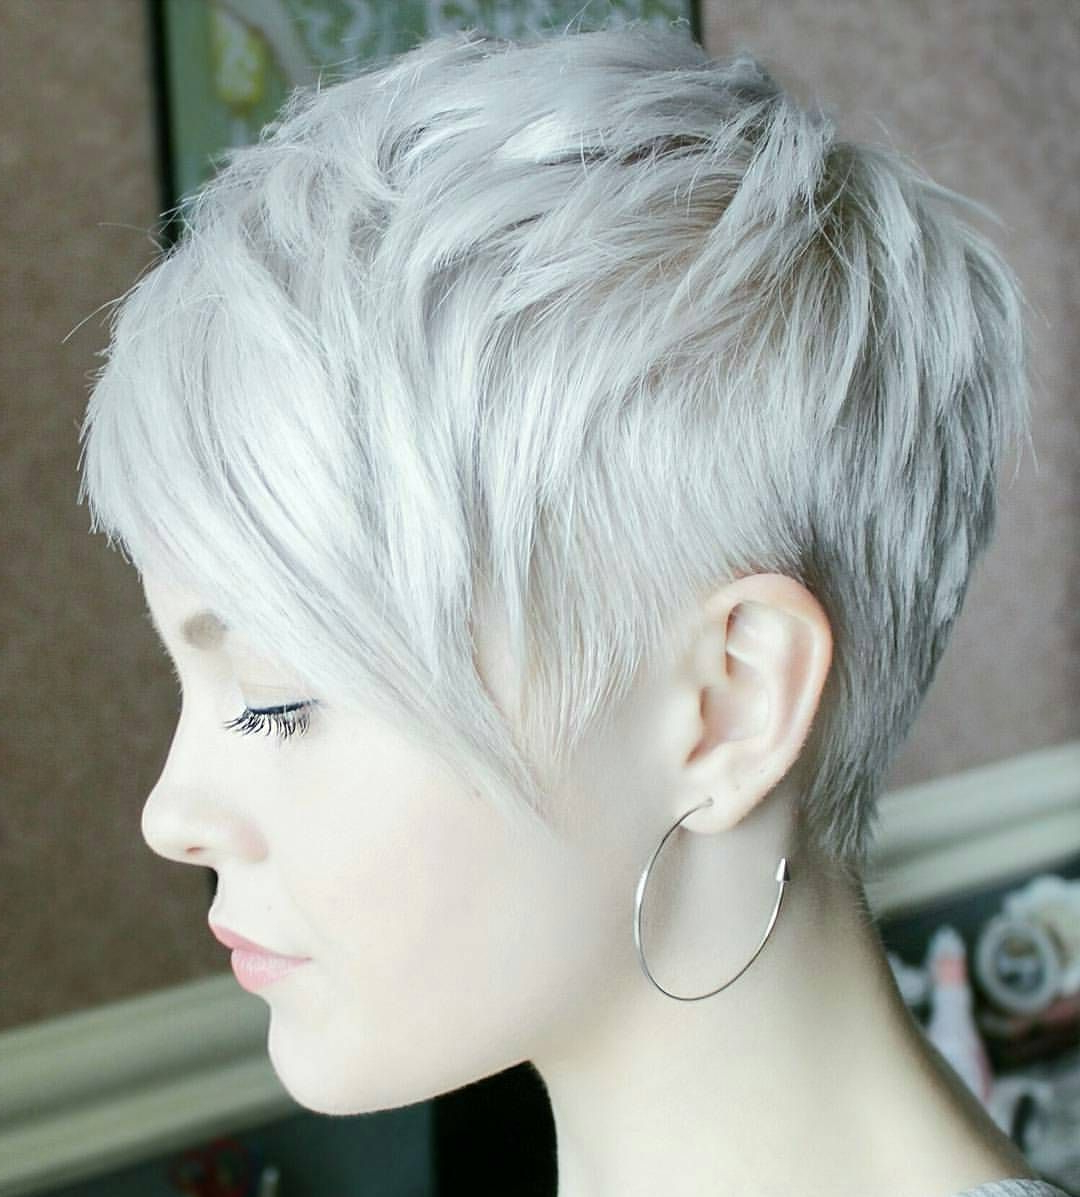 Most Recently Released Short Shaggy Pixie Hairstyles Throughout 50 Trendsetting Short And Long Pixie Haircut Styles — Cutest (View 16 of 20)